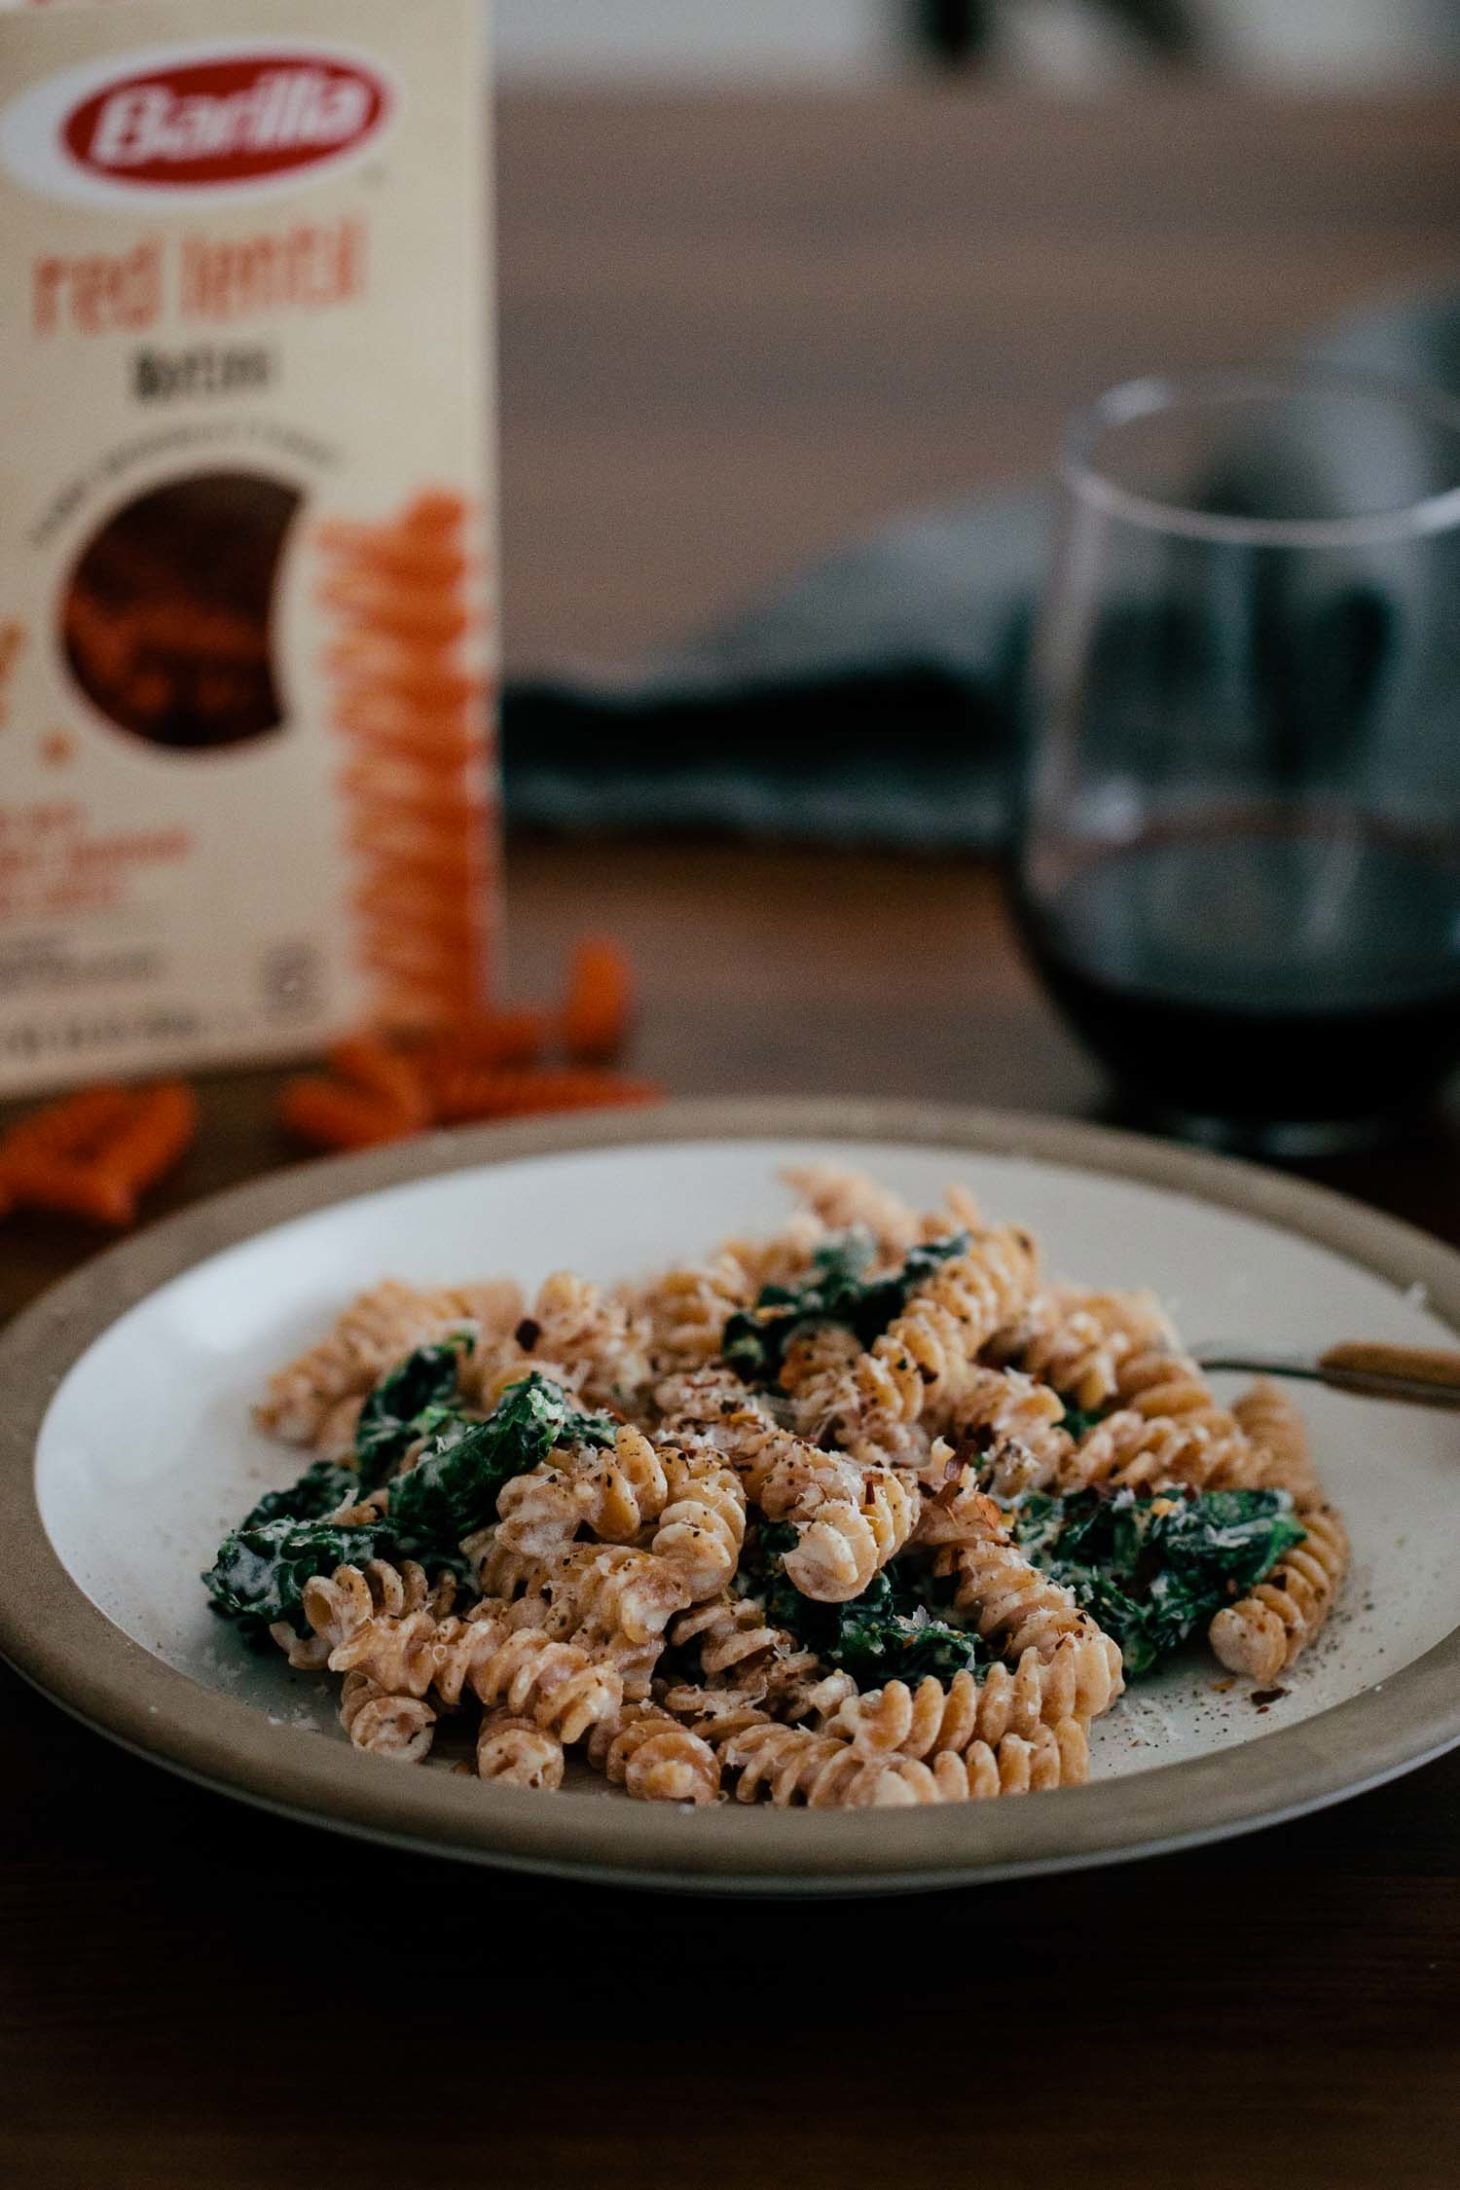 Lentil Rotini with Garlicky Kale and Goat Cheese Sauce